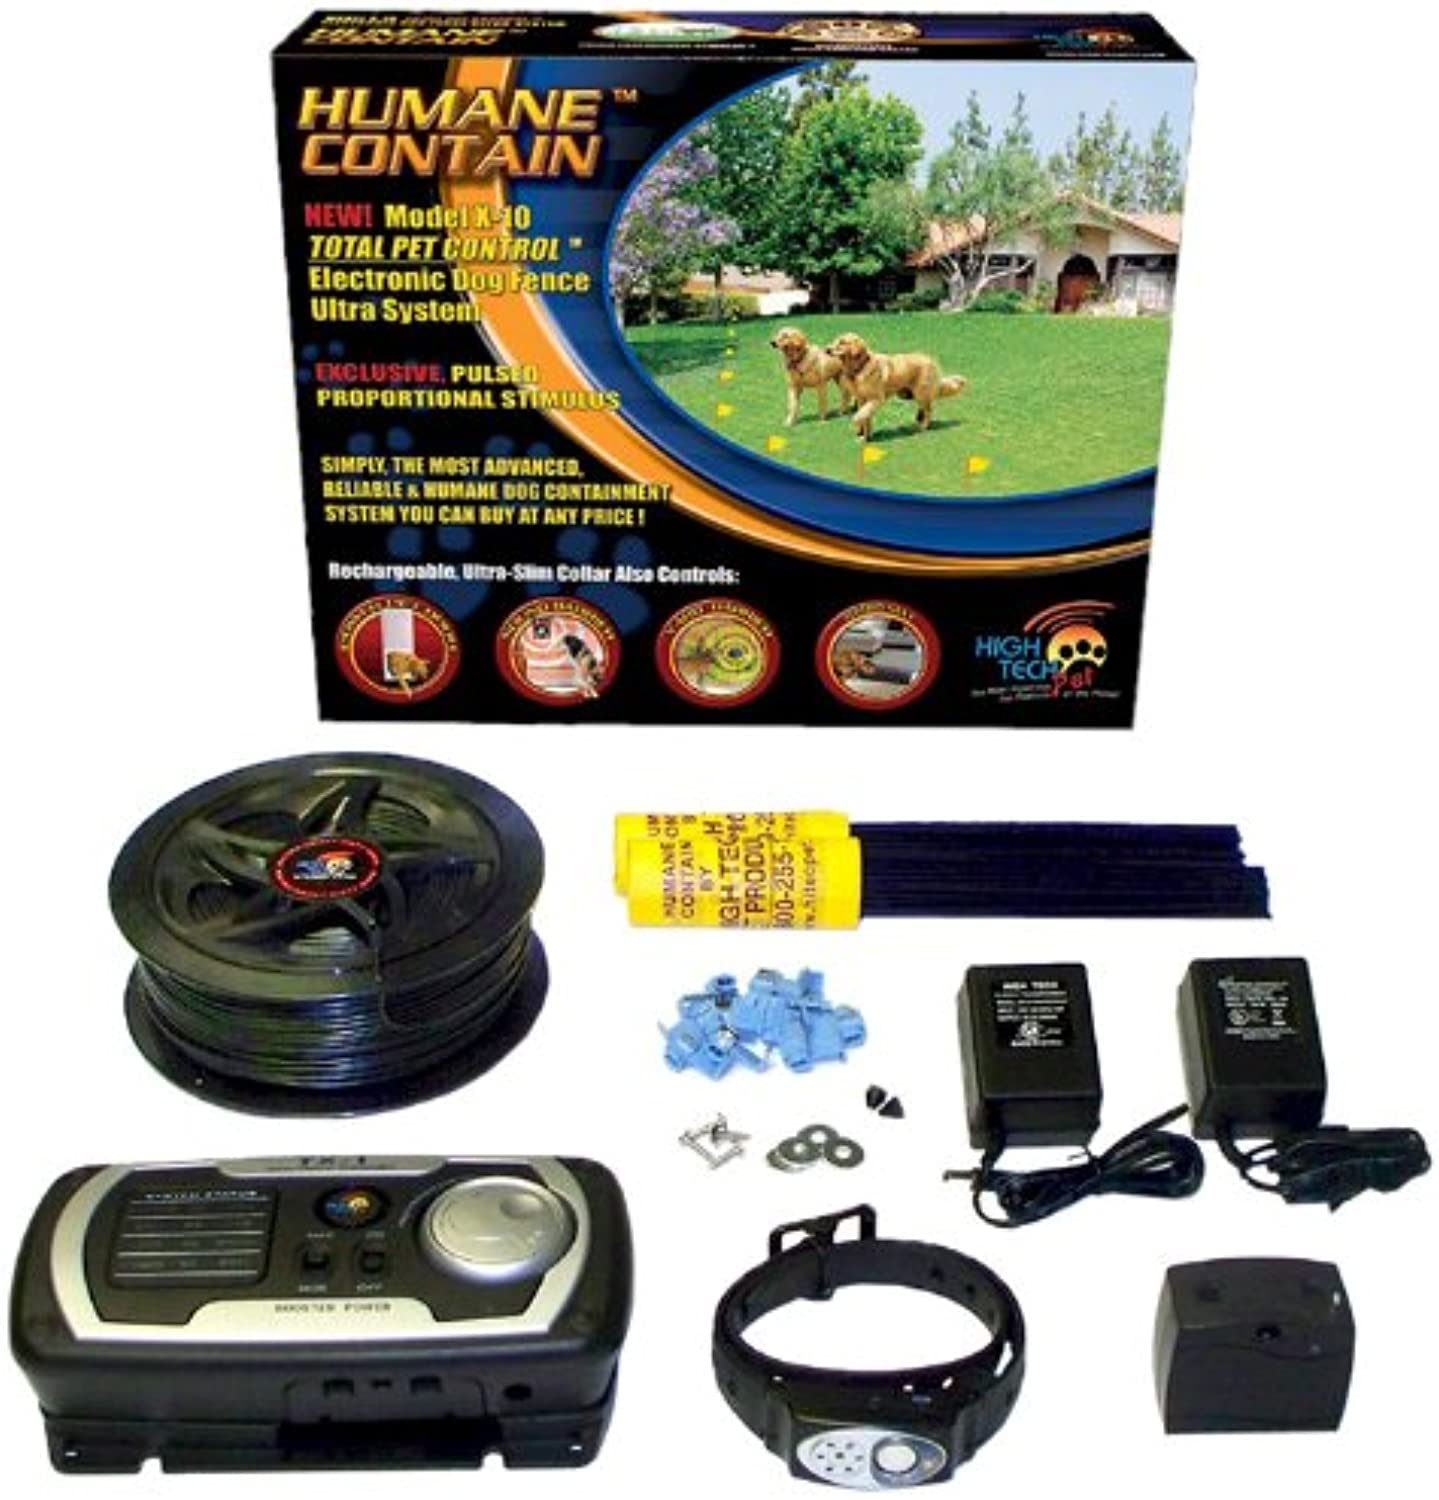 High Tech Pet Humane Contain X10 Rechargeable Multifunction Electronic Dog Fence